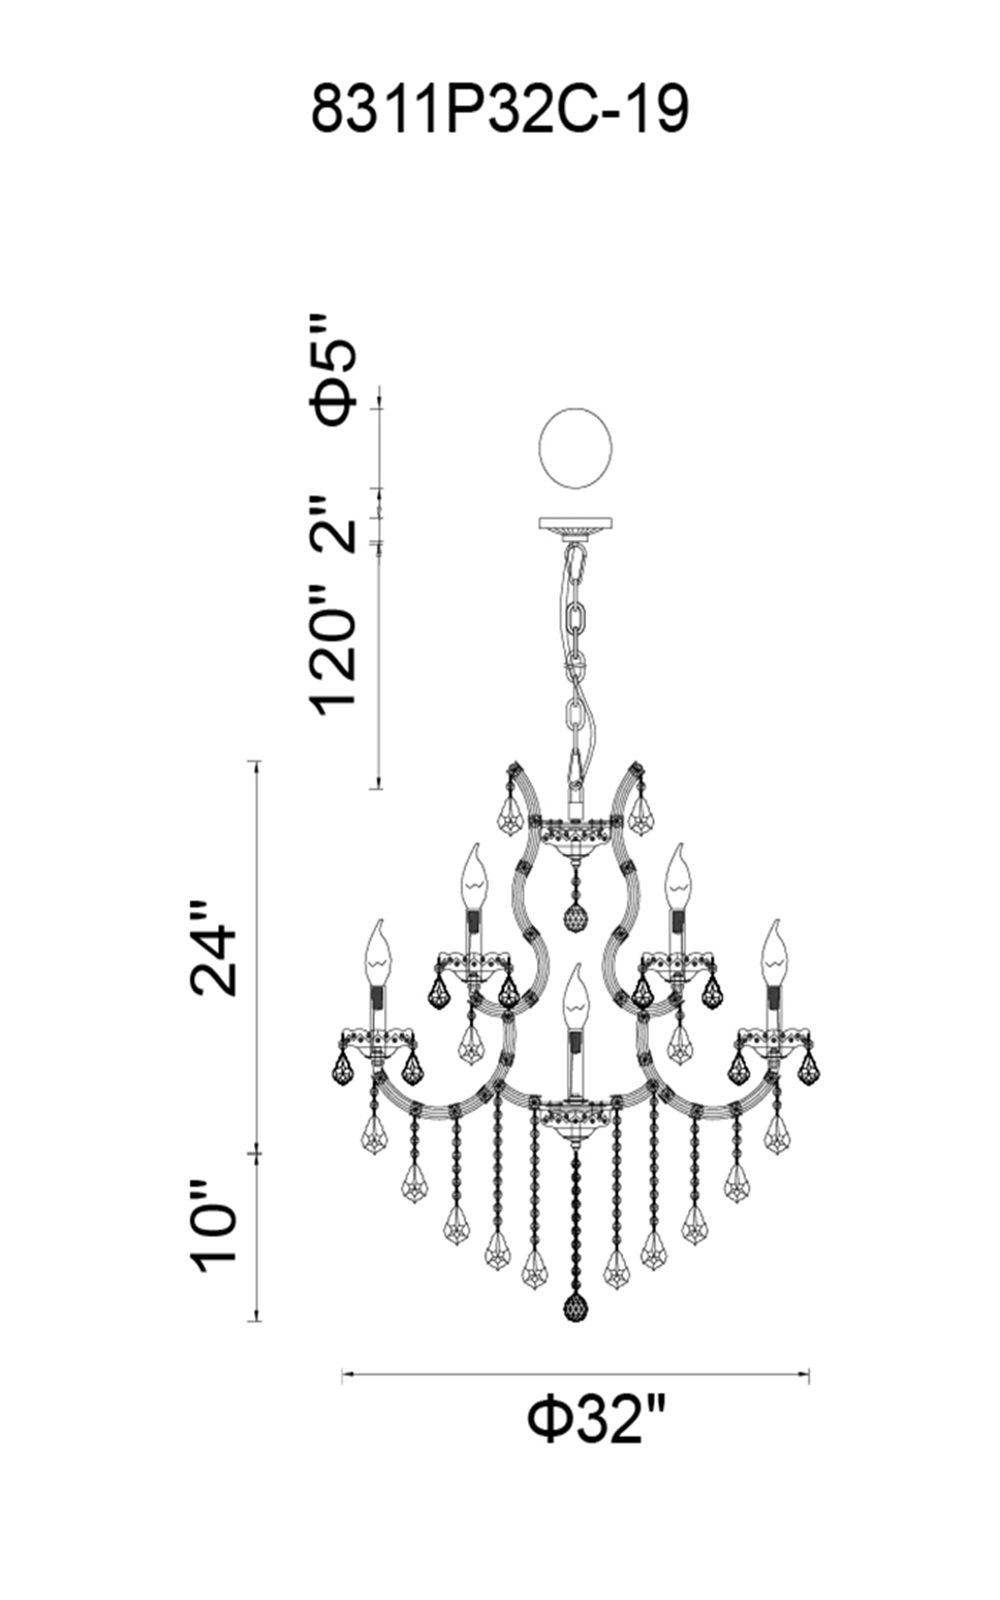 CWI Lighting Maria Theresa 19 Light Up Chandelier With Gold Finish Model: 8311P32G-19 (CLEAR) Line Drawing